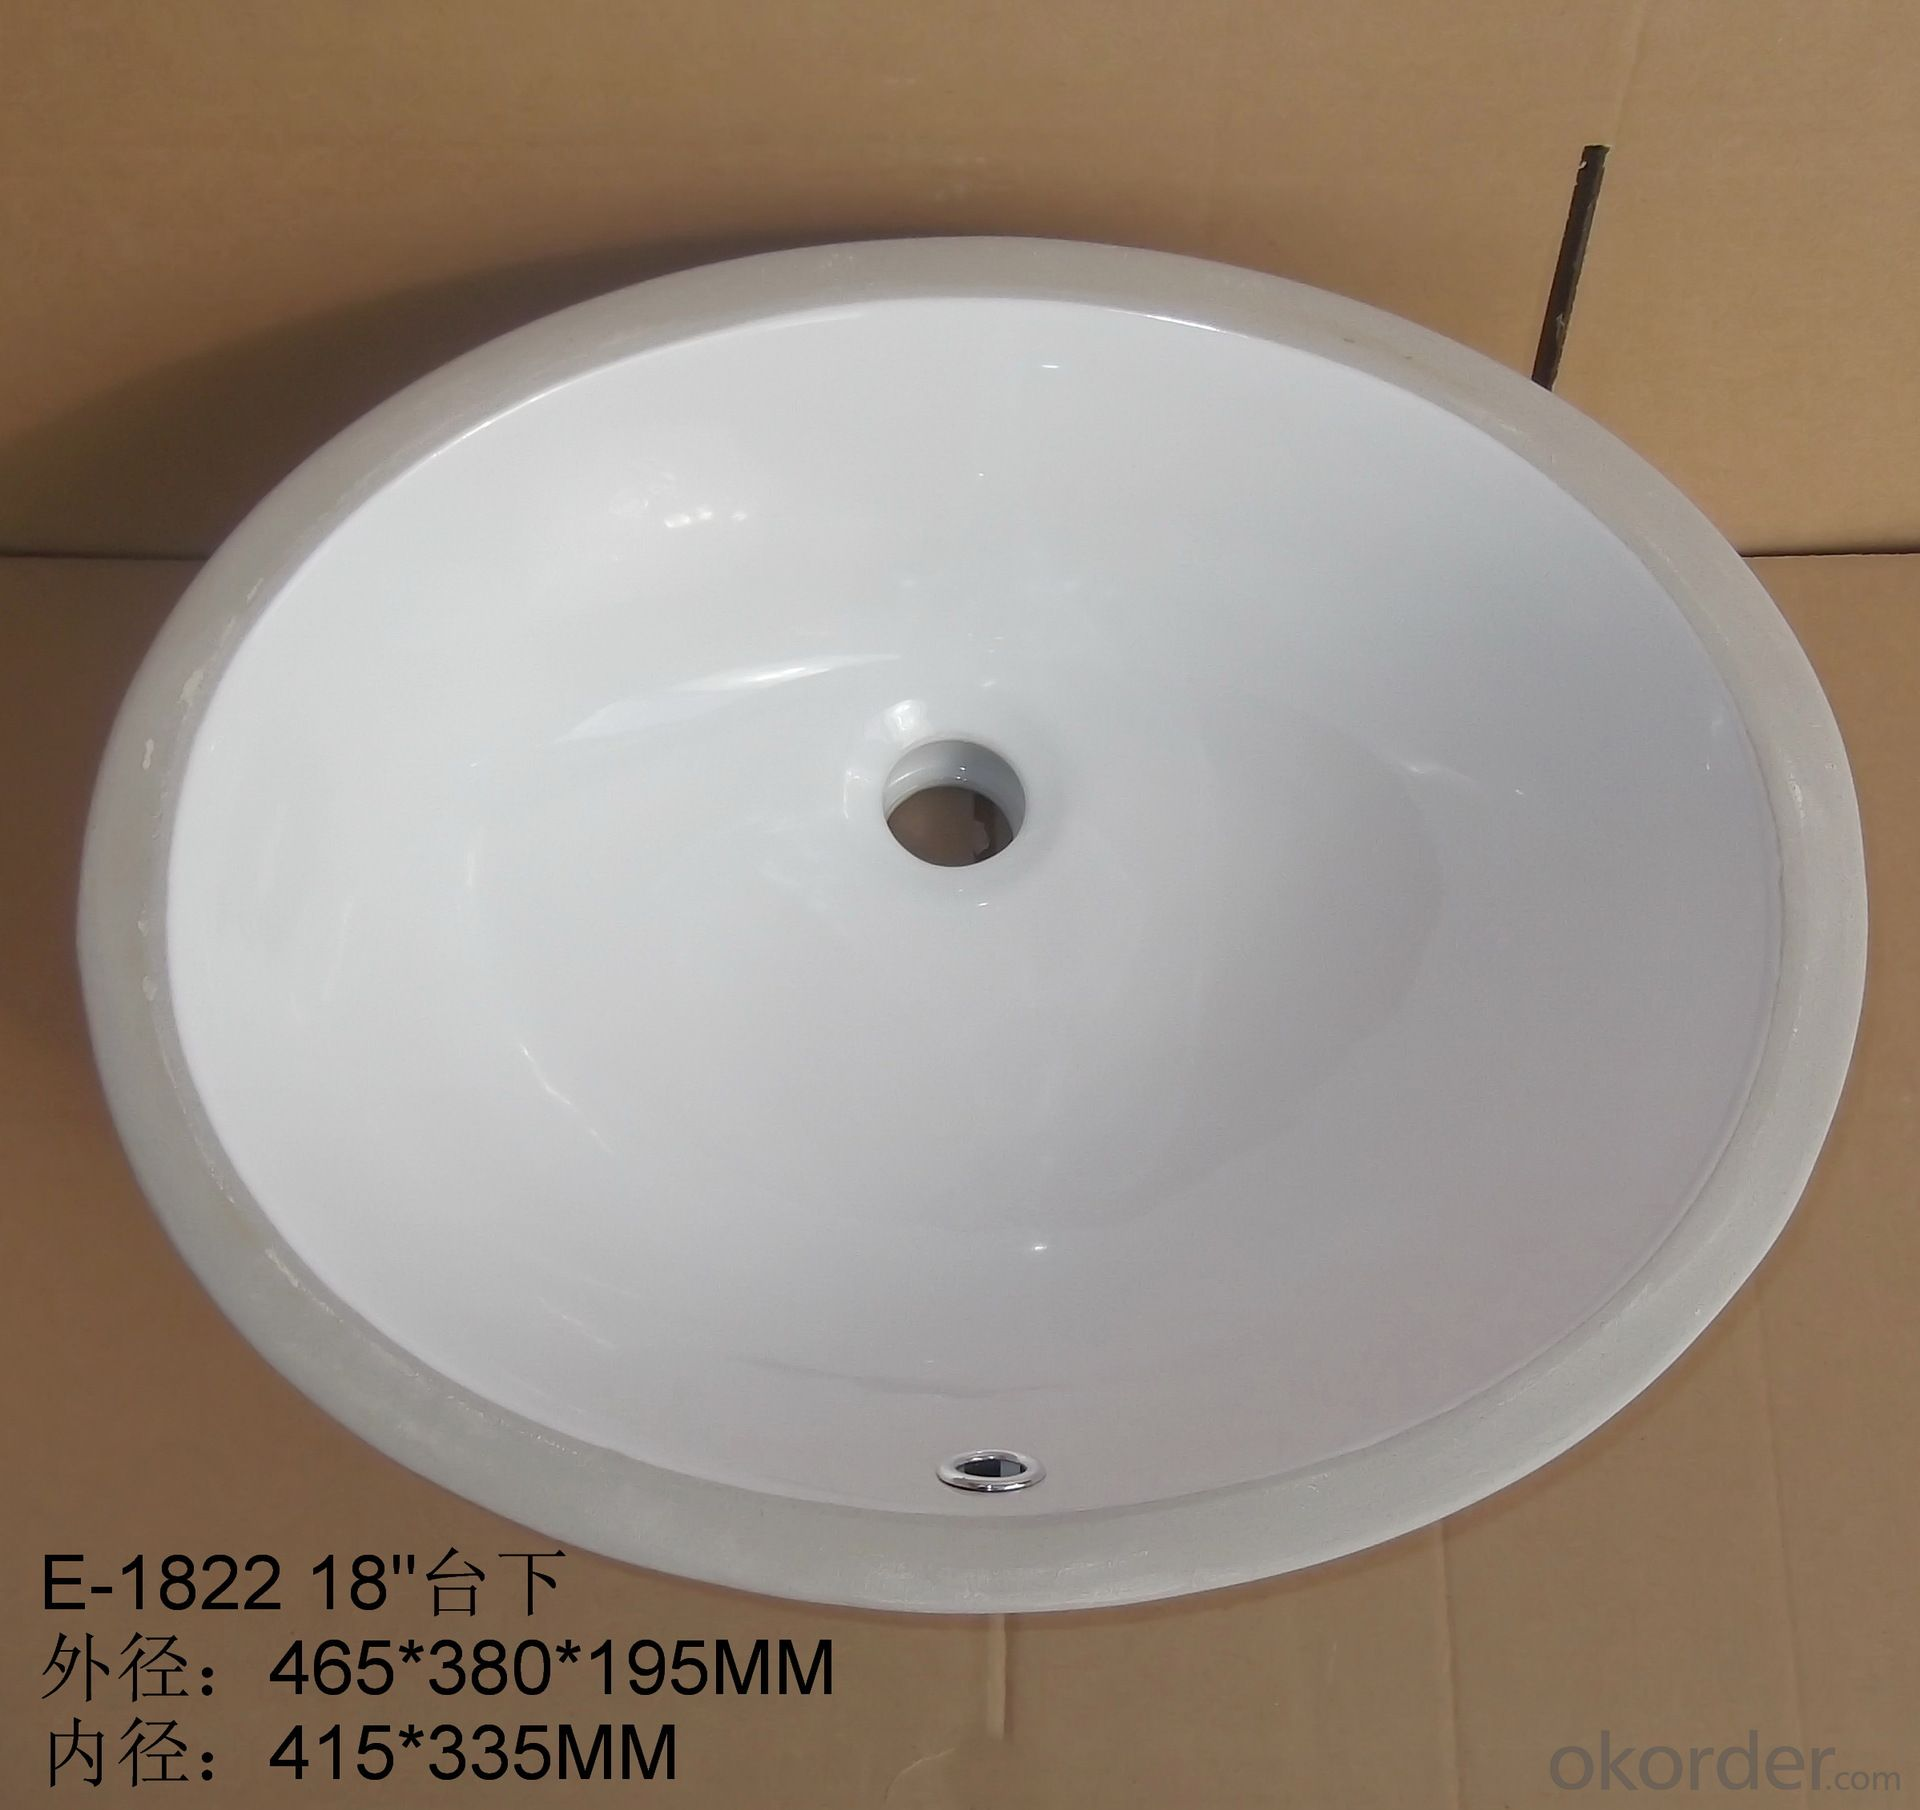 undercounter basin white16-inch and 18-inch